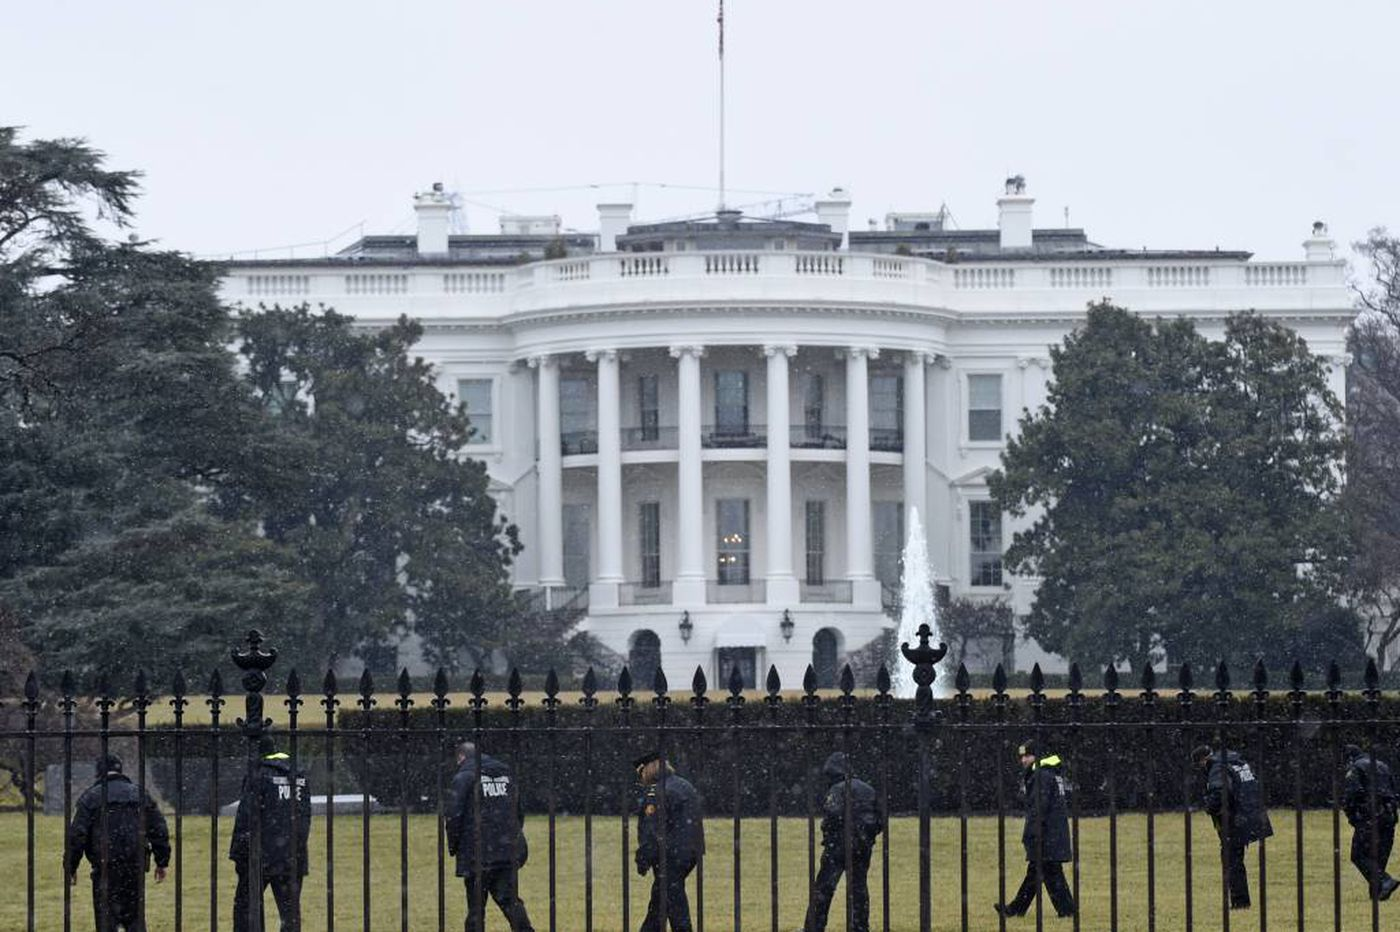 Secret Service agents investigated after car hits White House barricade